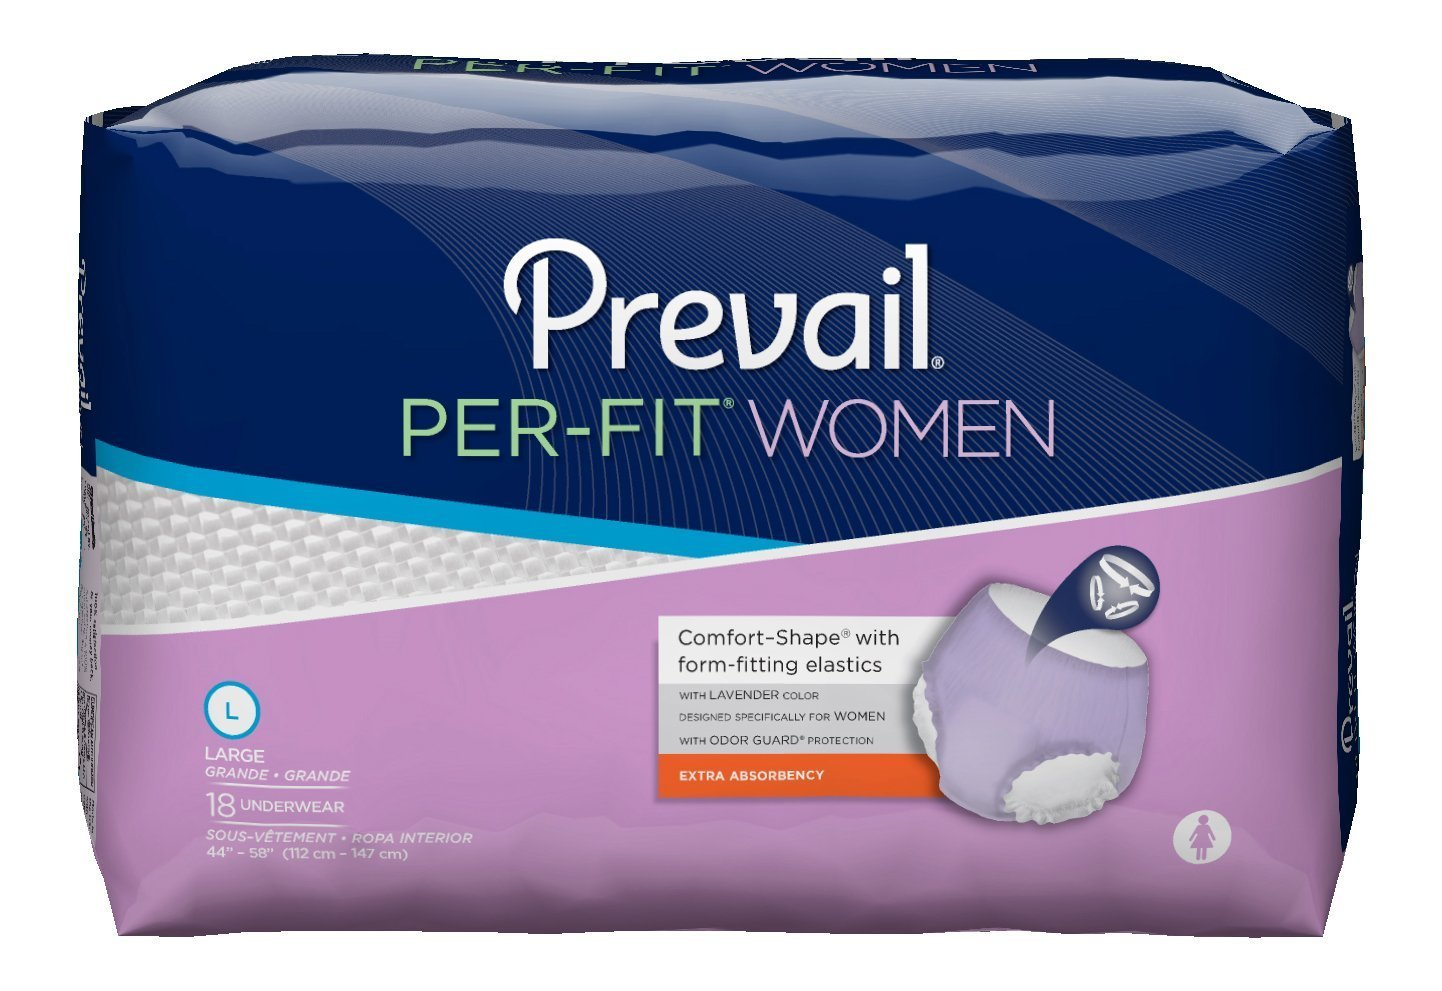 Amazon.com: Absorbent Underwear Prevail Pull On Large Disposable Moderate Absorbency: Health & Personal Care